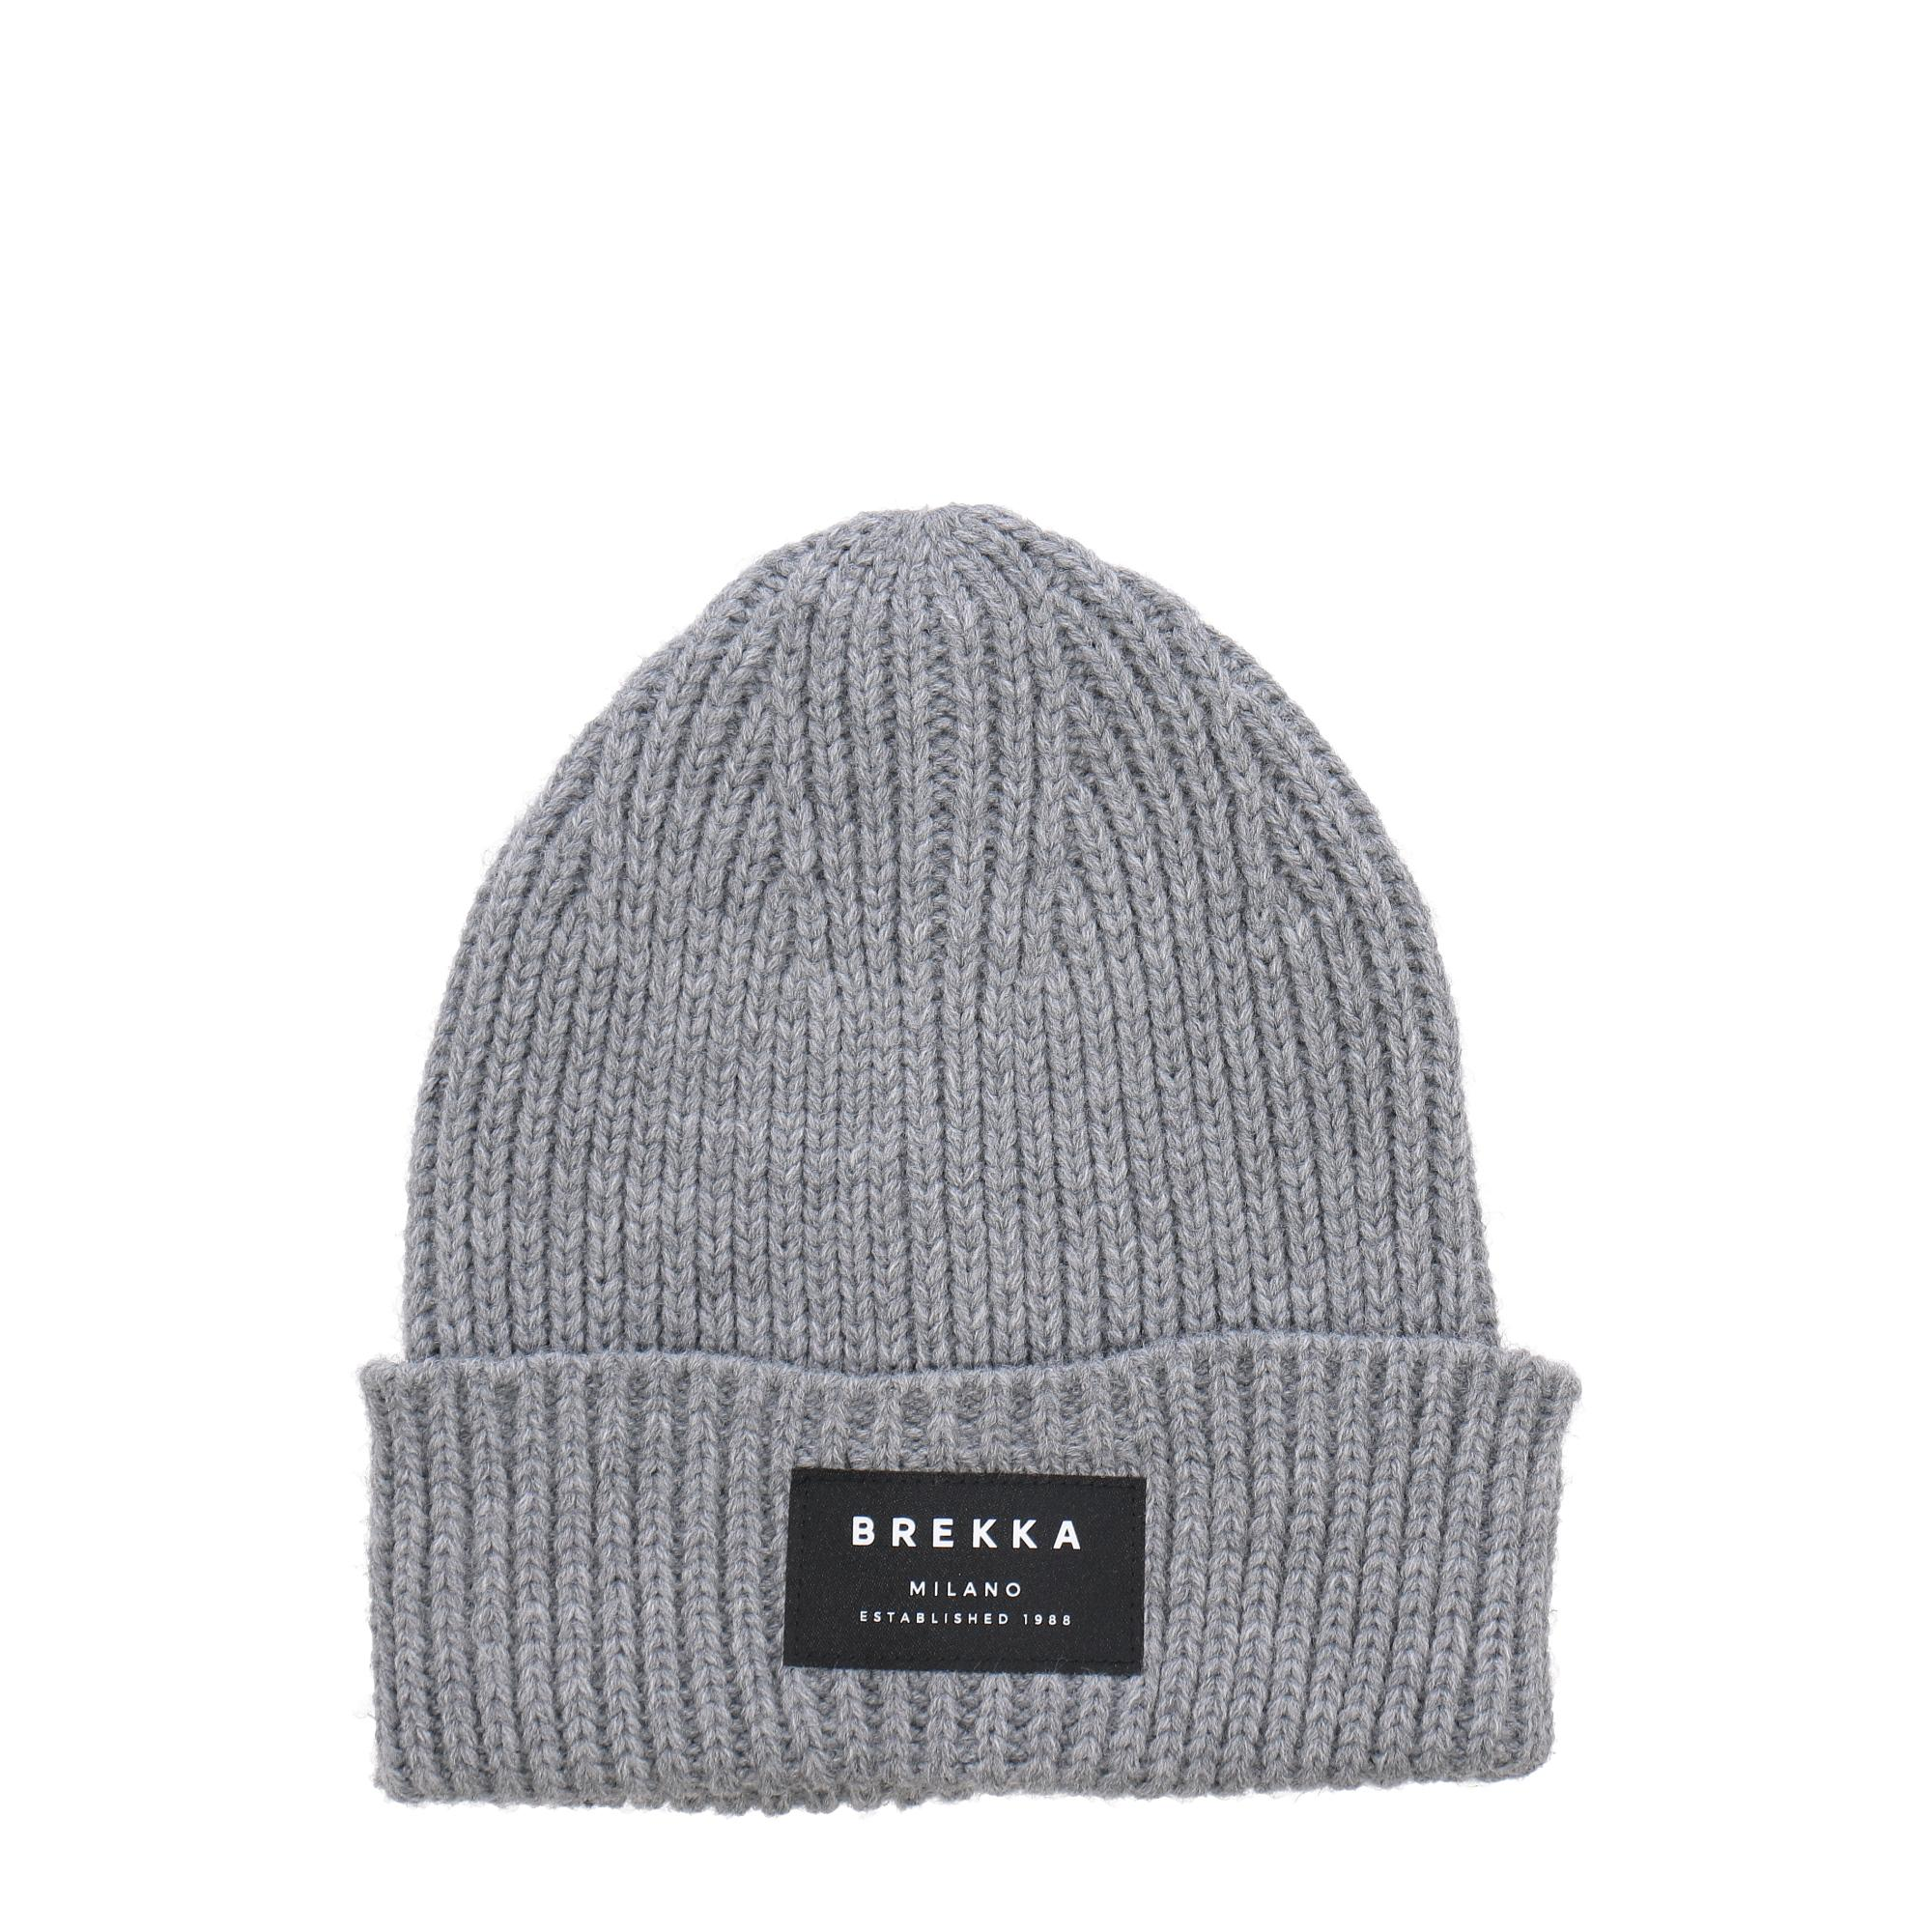 Brekka Kk Long Light grey melange